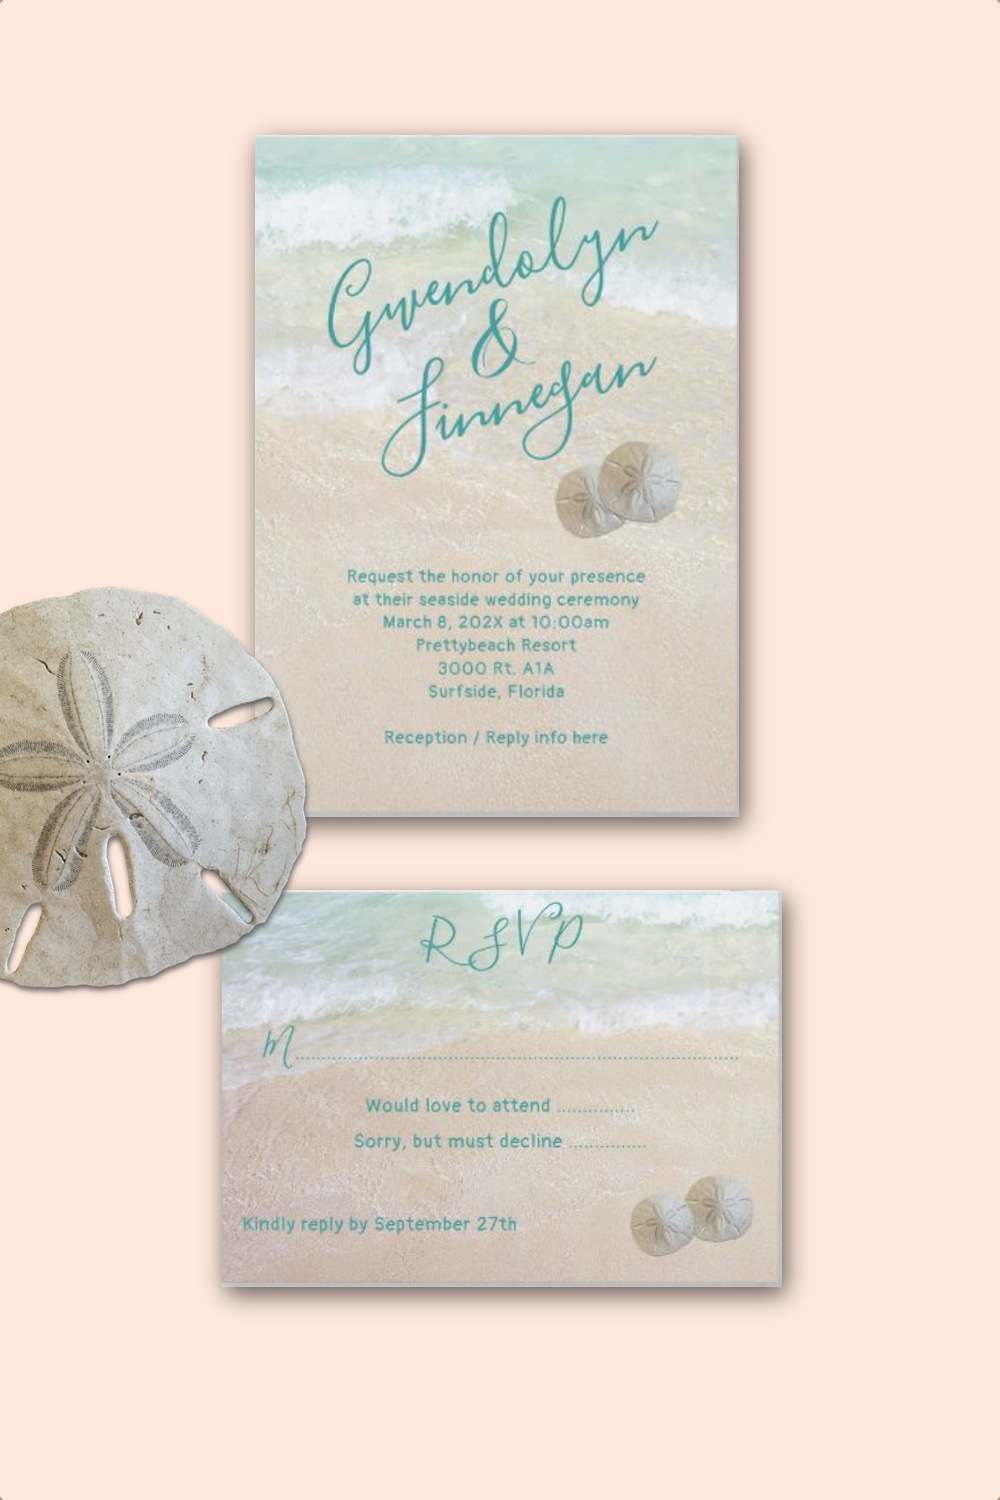 Two sand dollars enclosure cards